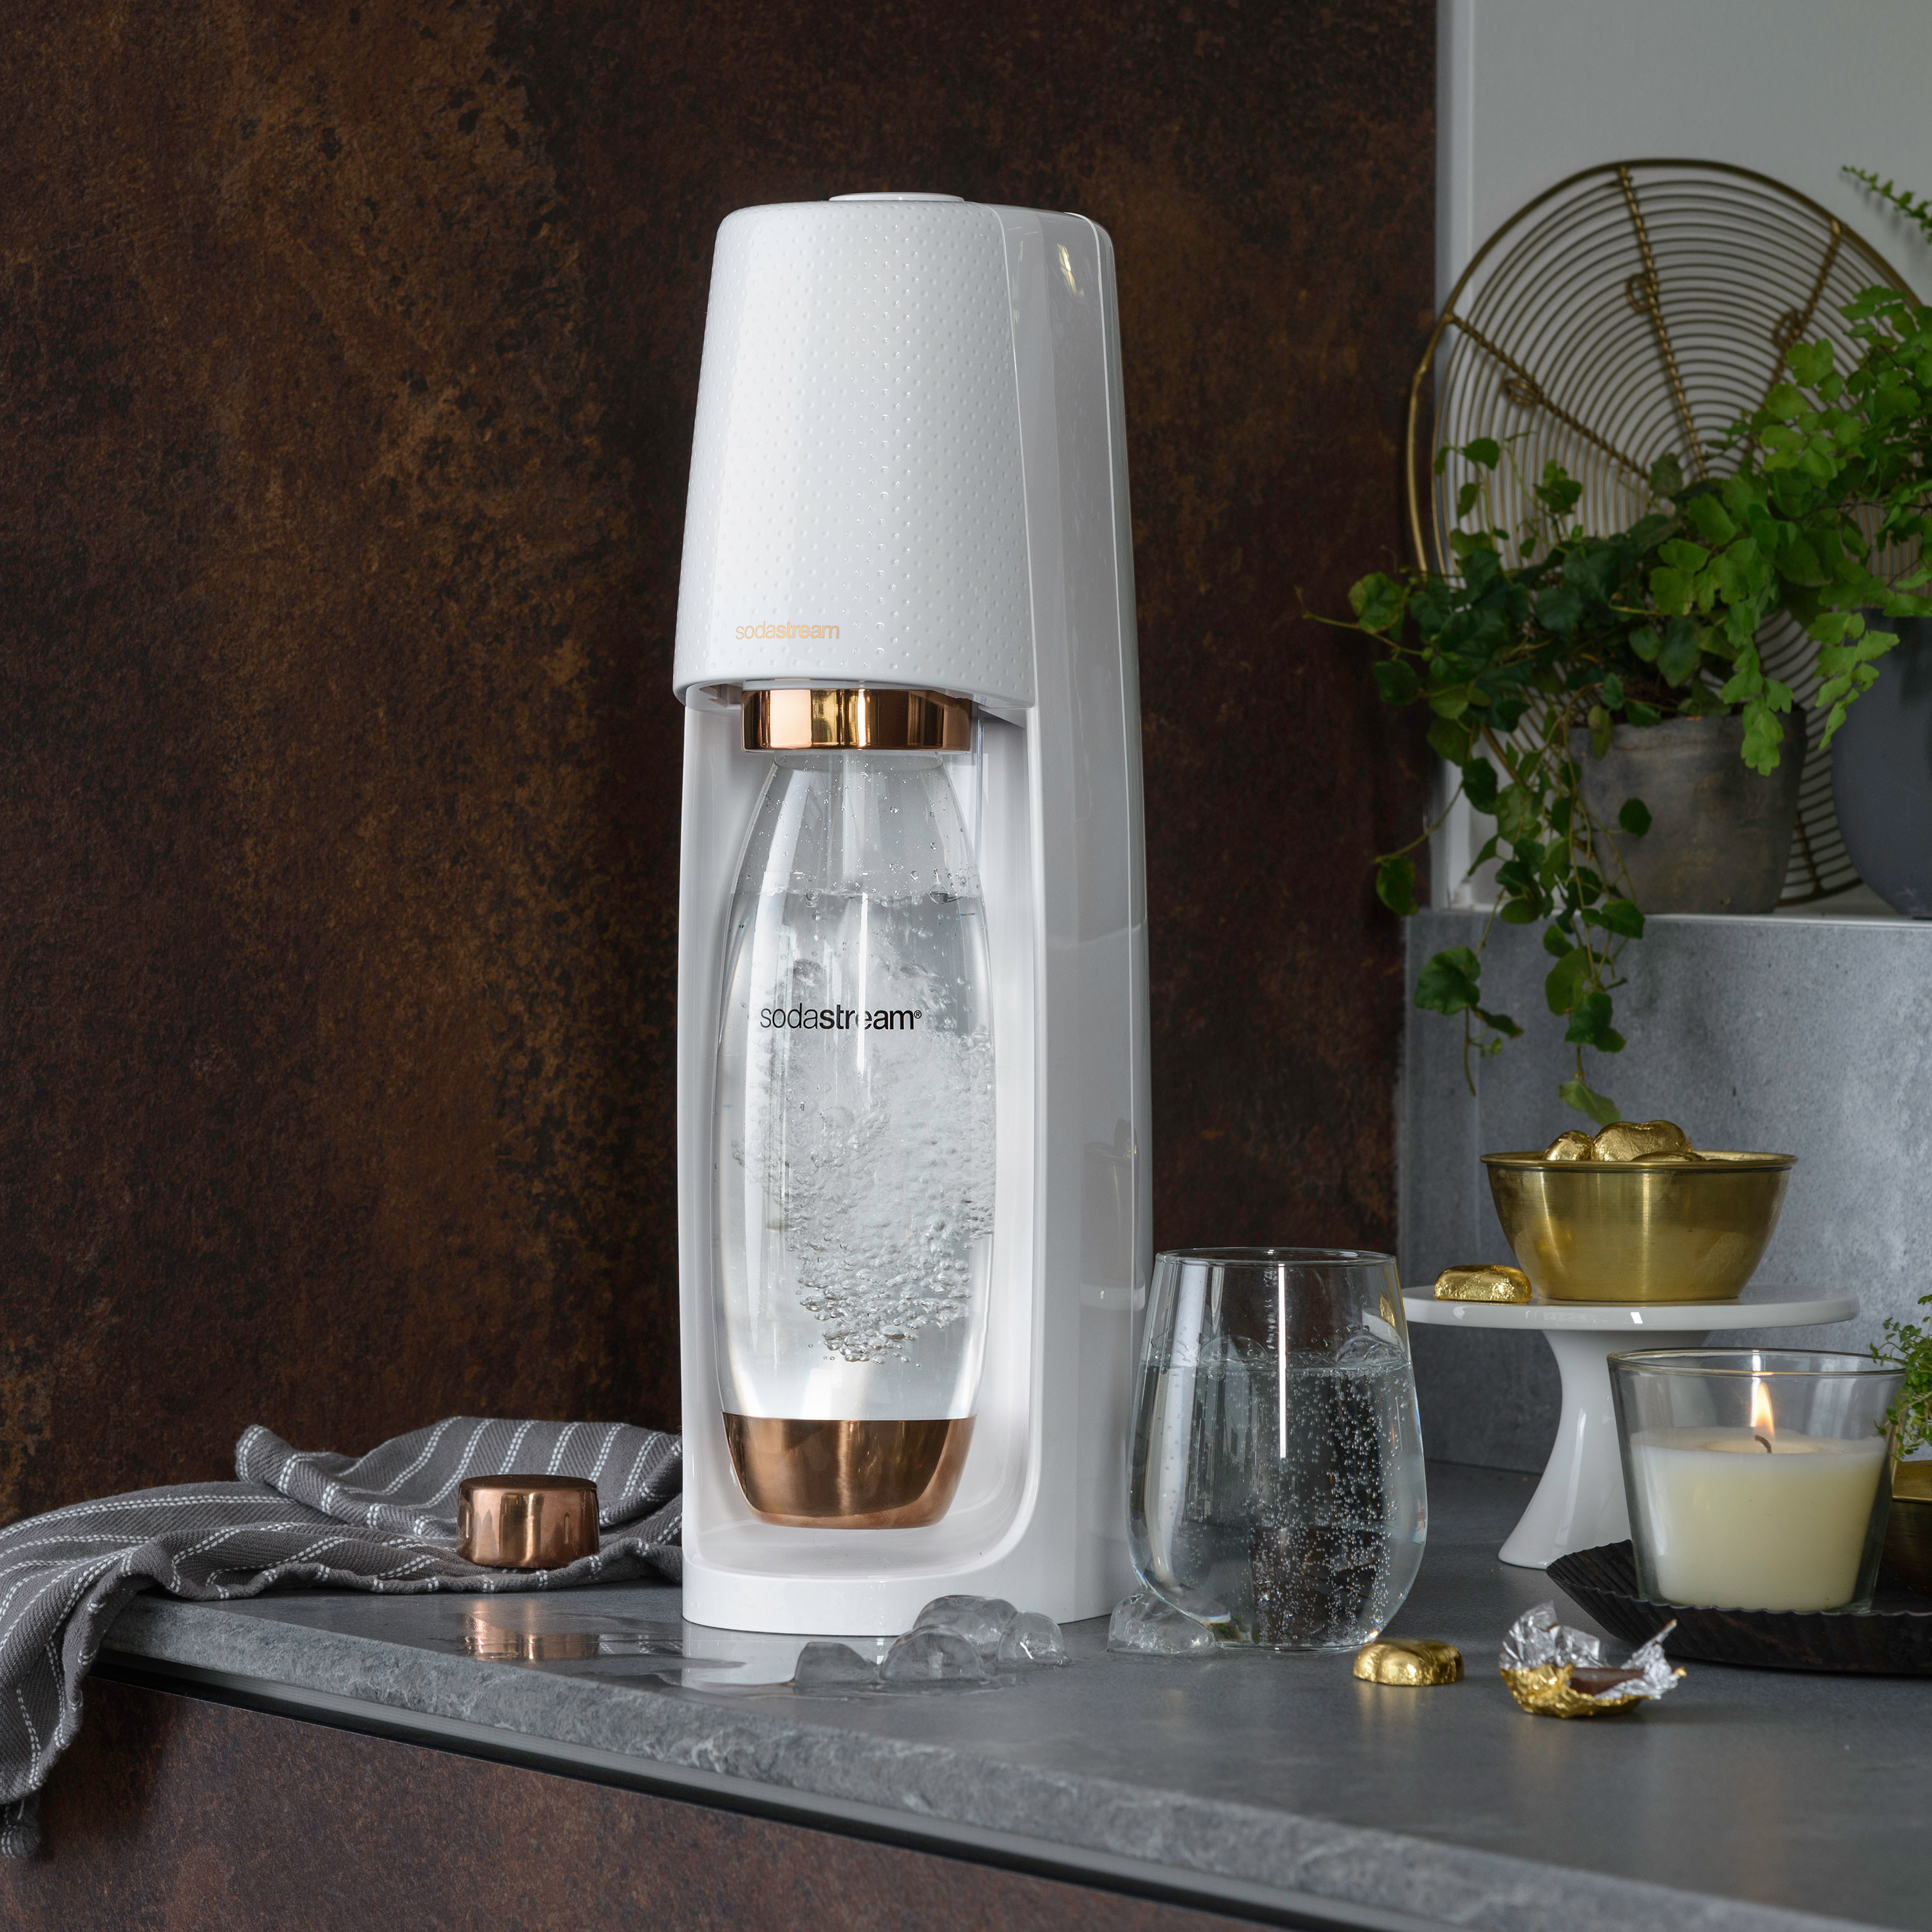 white and gold sodastream machine making fizzy water